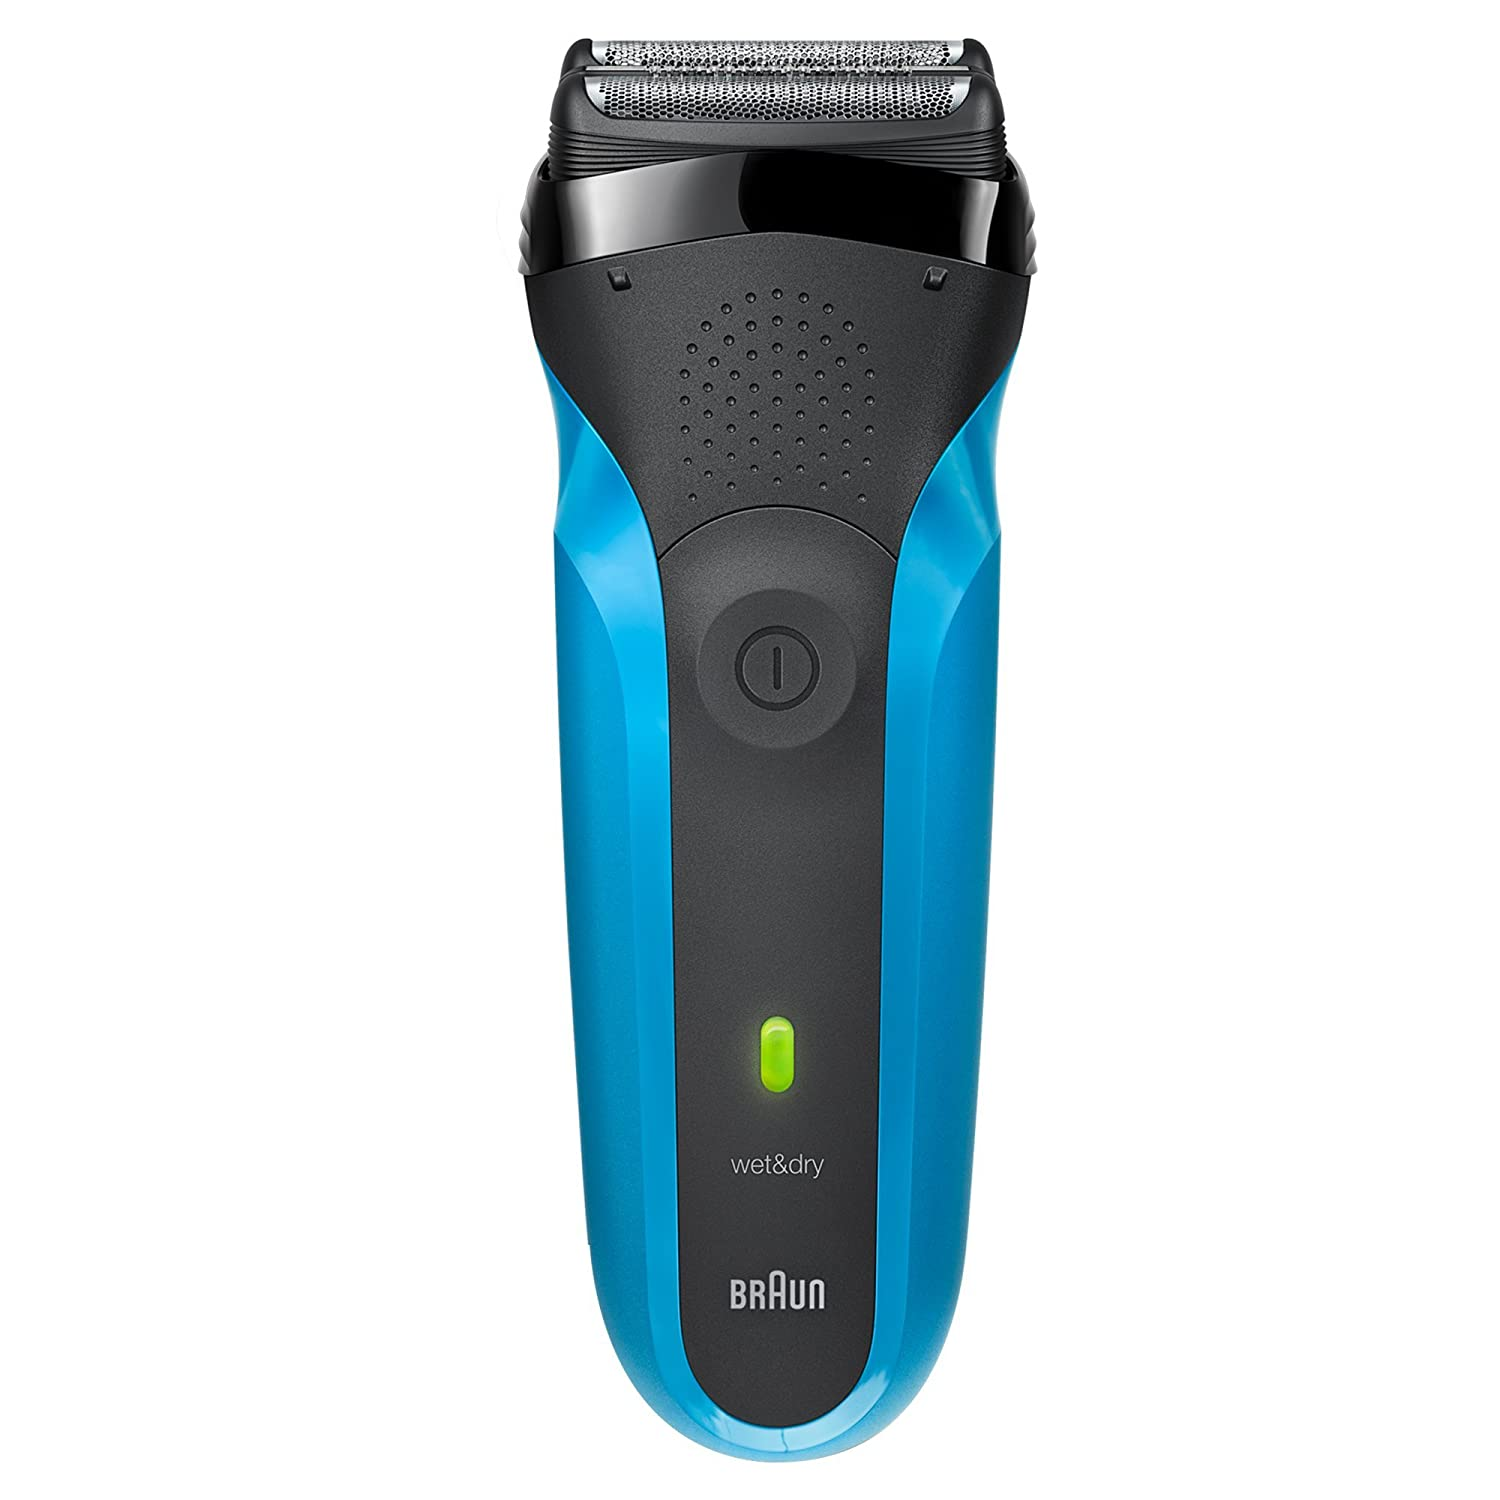 Braun Series 3 310s Wet & Dry Electric Shaver for Men/Rechargeable Electric Razor, Blue BRA310